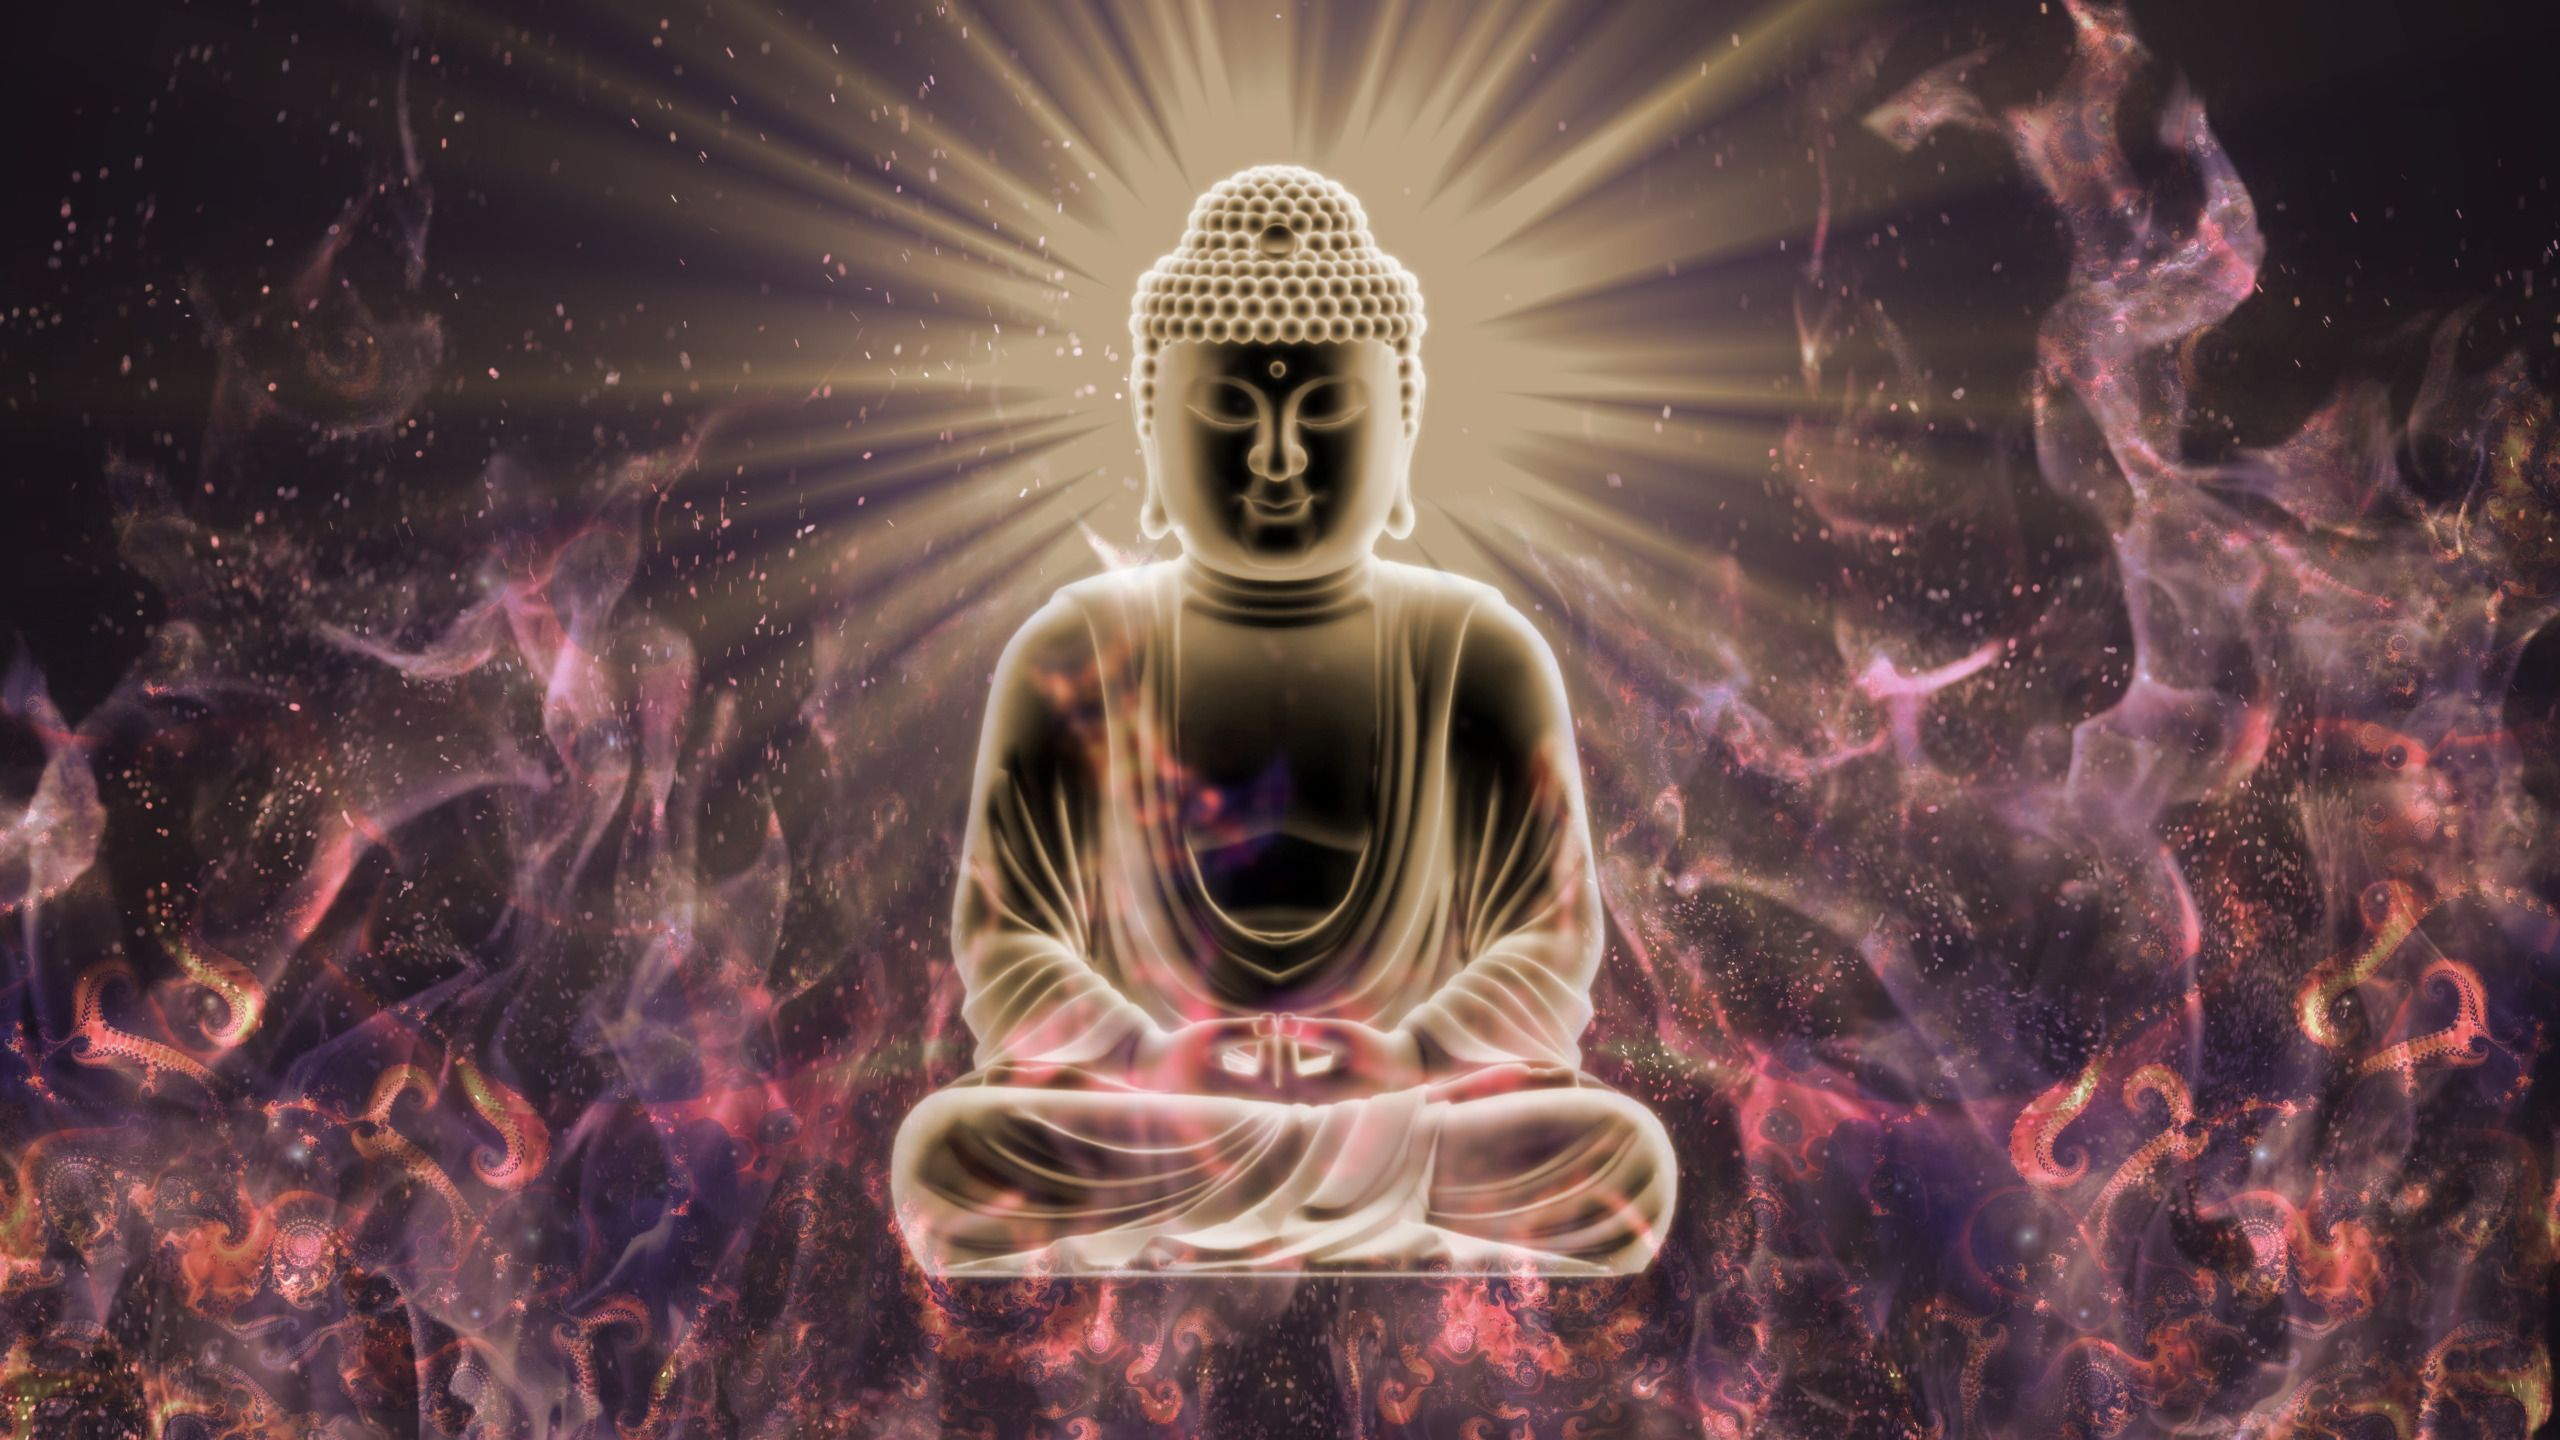 Abstract Buddha Wallpapers Top Free Abstract Buddha Backgrounds Wallpaperaccess